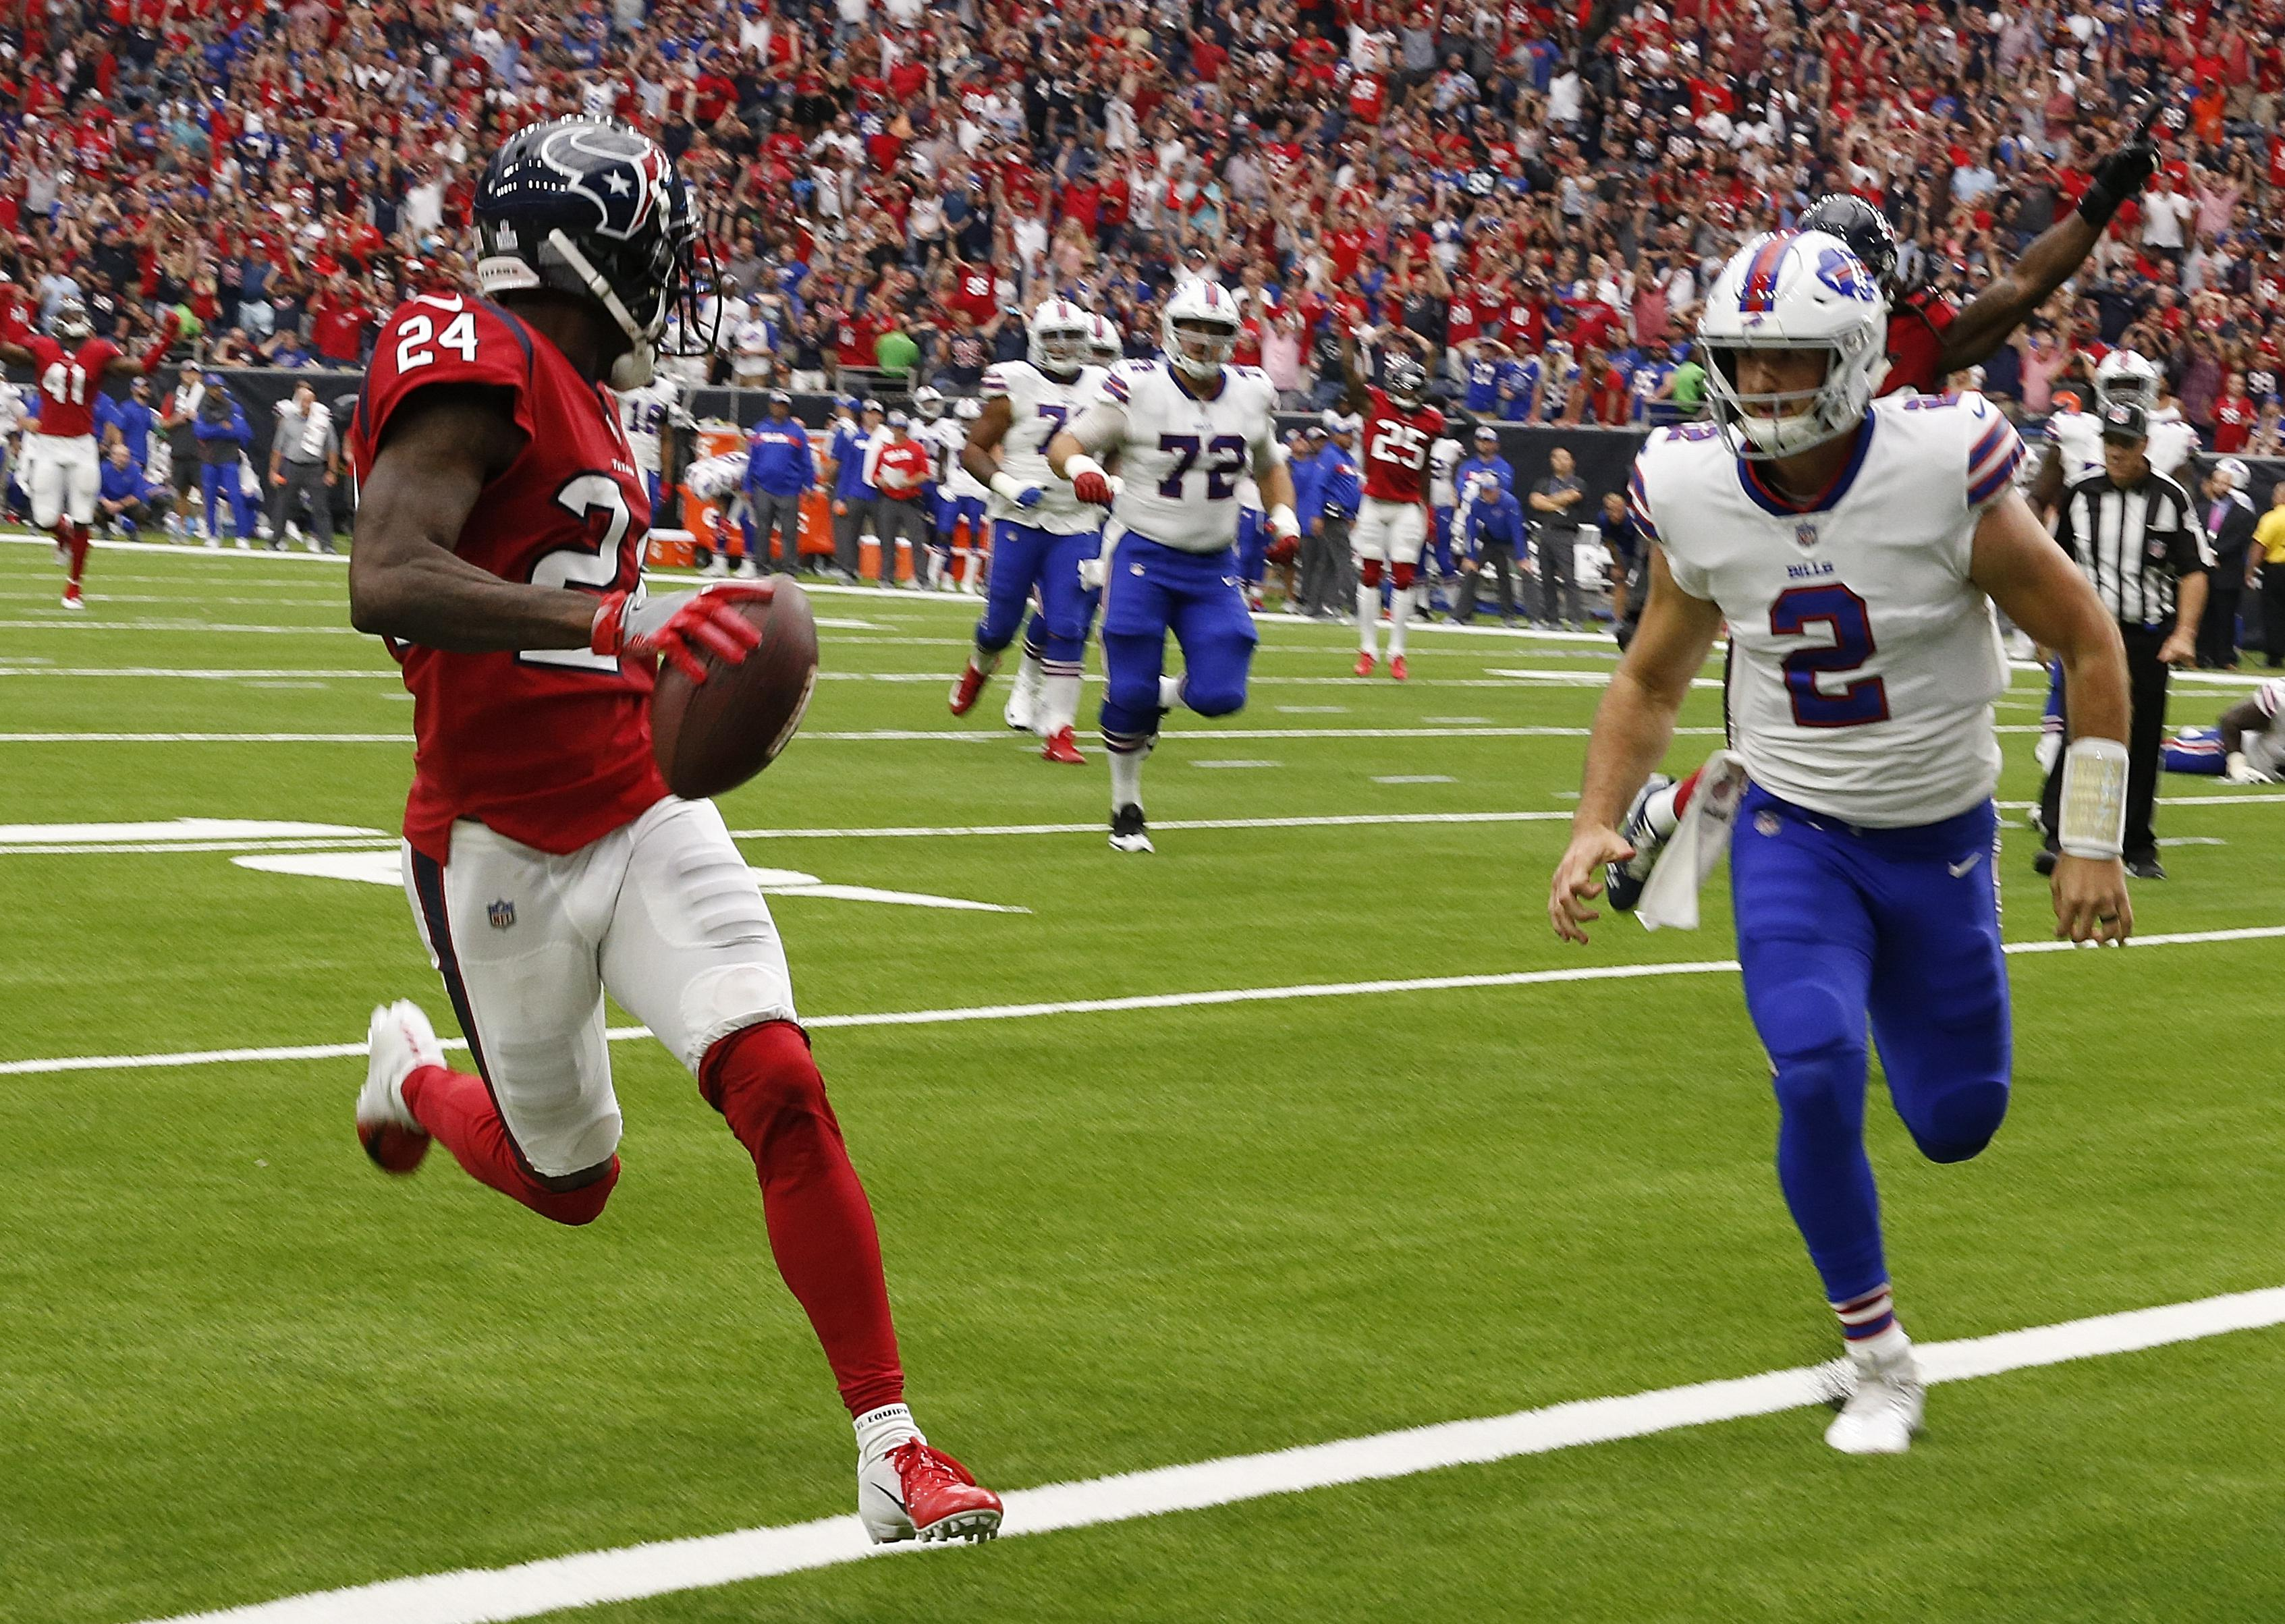 HOUSTON, TX - OCTOBER 14:  Johnathan Joseph #24 of the Houston Texans scores on an intereption as Nathan Peterman #2 of the Buffalo Bills is late on the coverage at NRG Stadium on October 14, 2018 in Houston, Texas.  (Photo by Bob Levey/Getty Images)